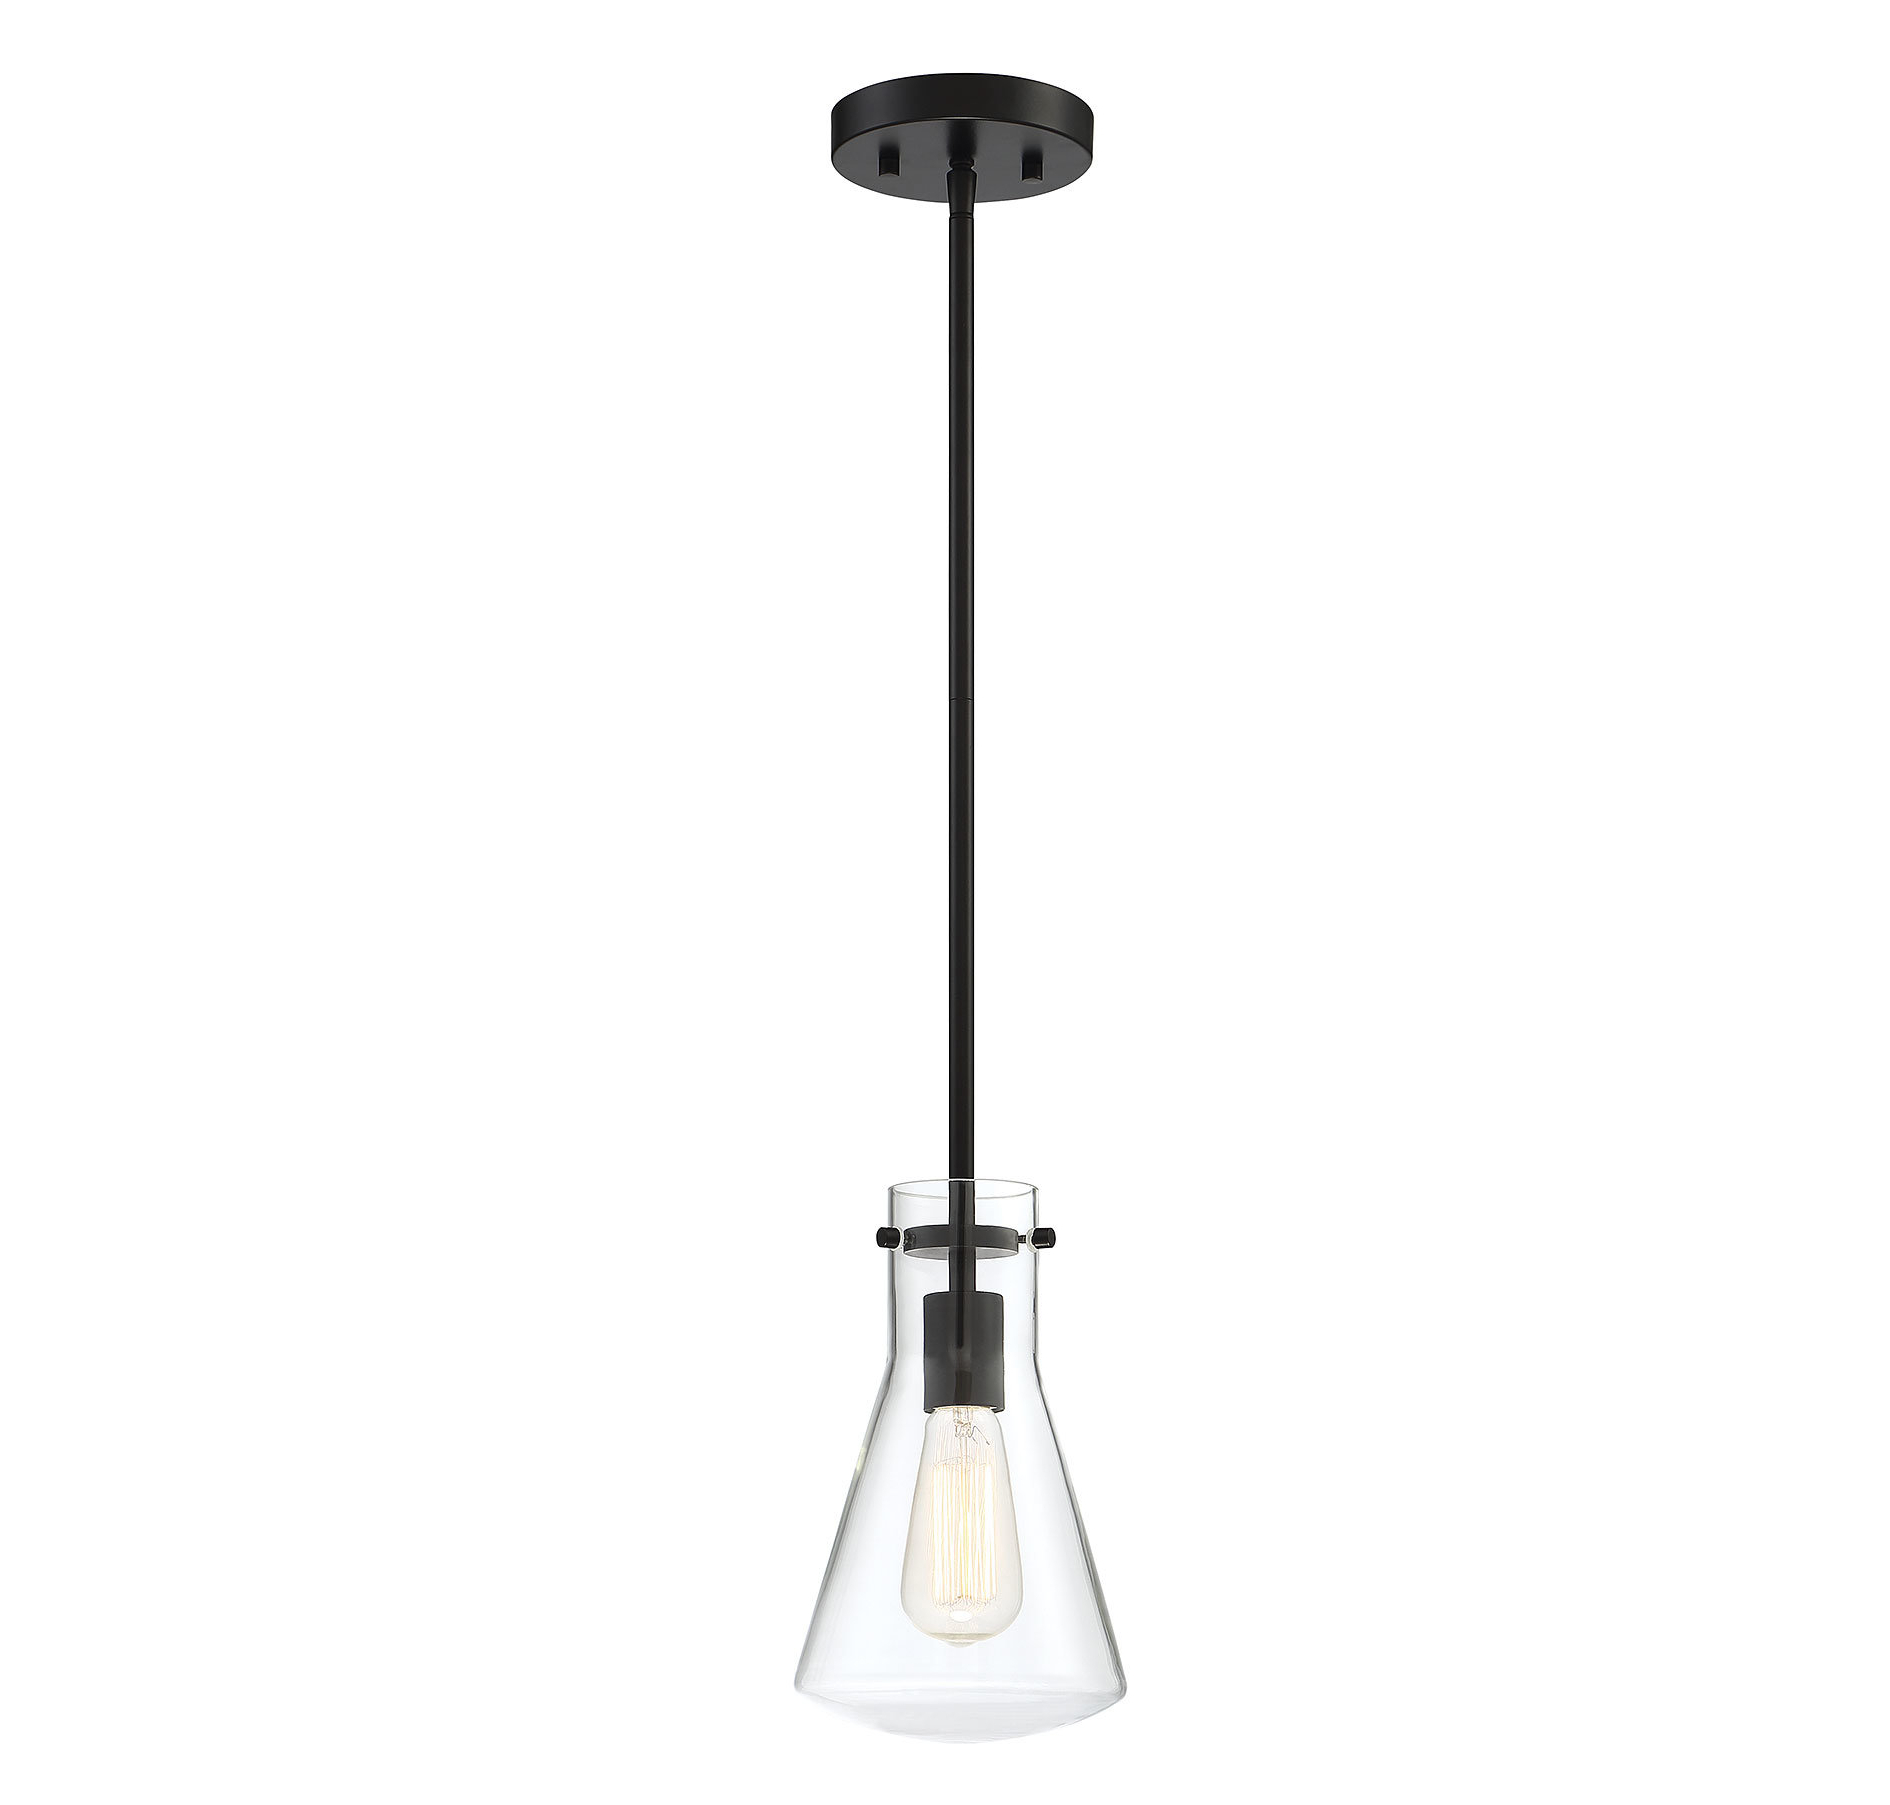 Angelina 1 Light Single Cylinder Pendants Pertaining To Current Enciso 1 Light Single Cone Pendant (View 7 of 25)